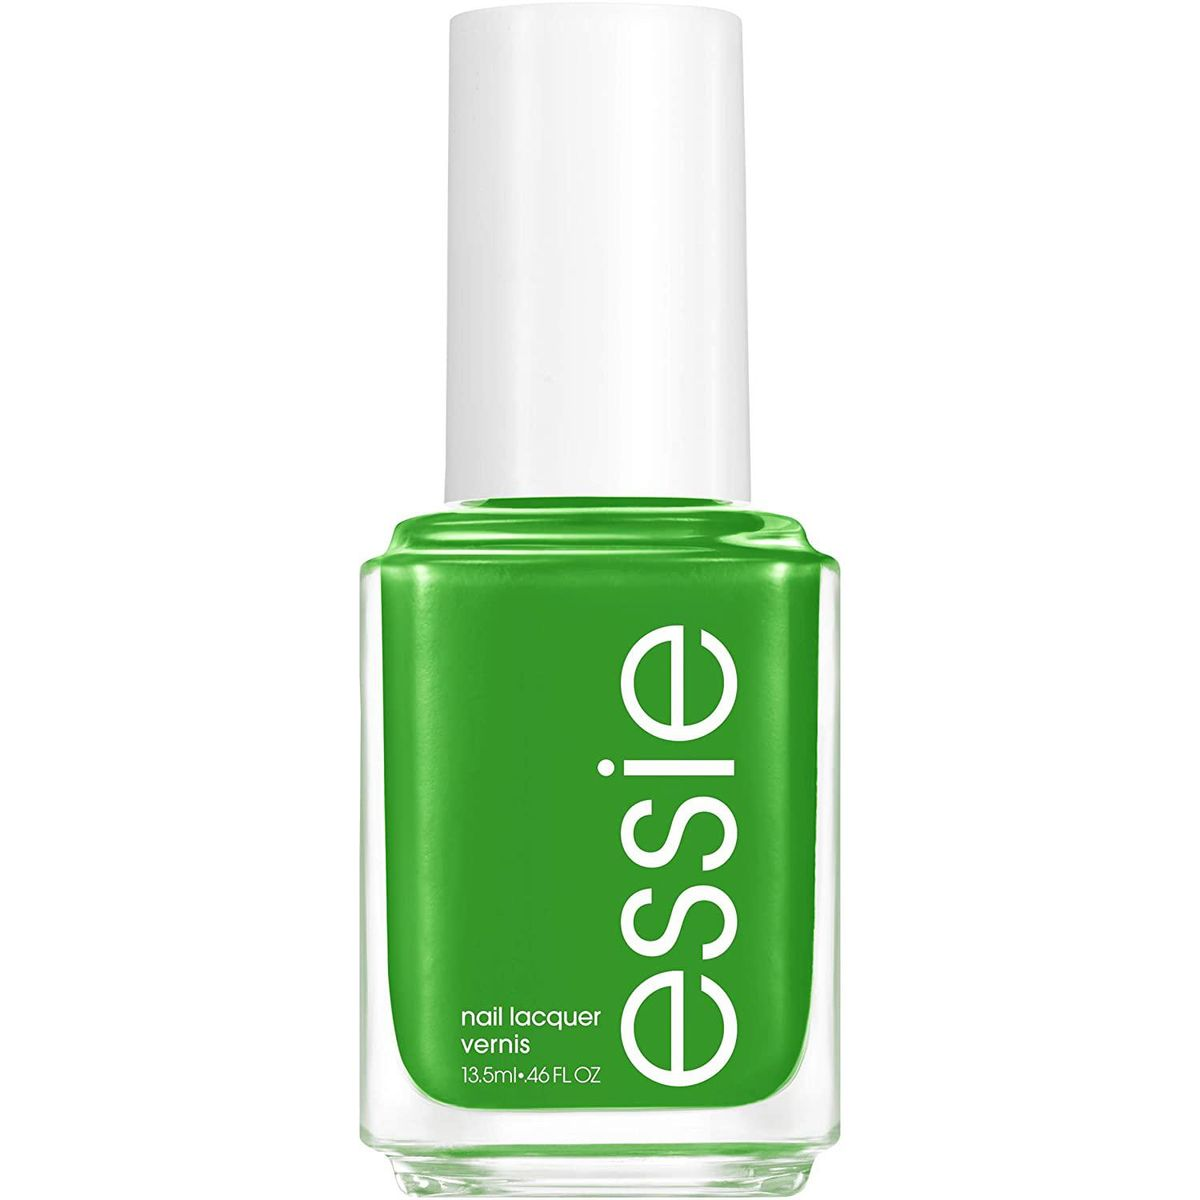 Limited Edition Summer 2021 Nail Polish in Feeling Just Lime